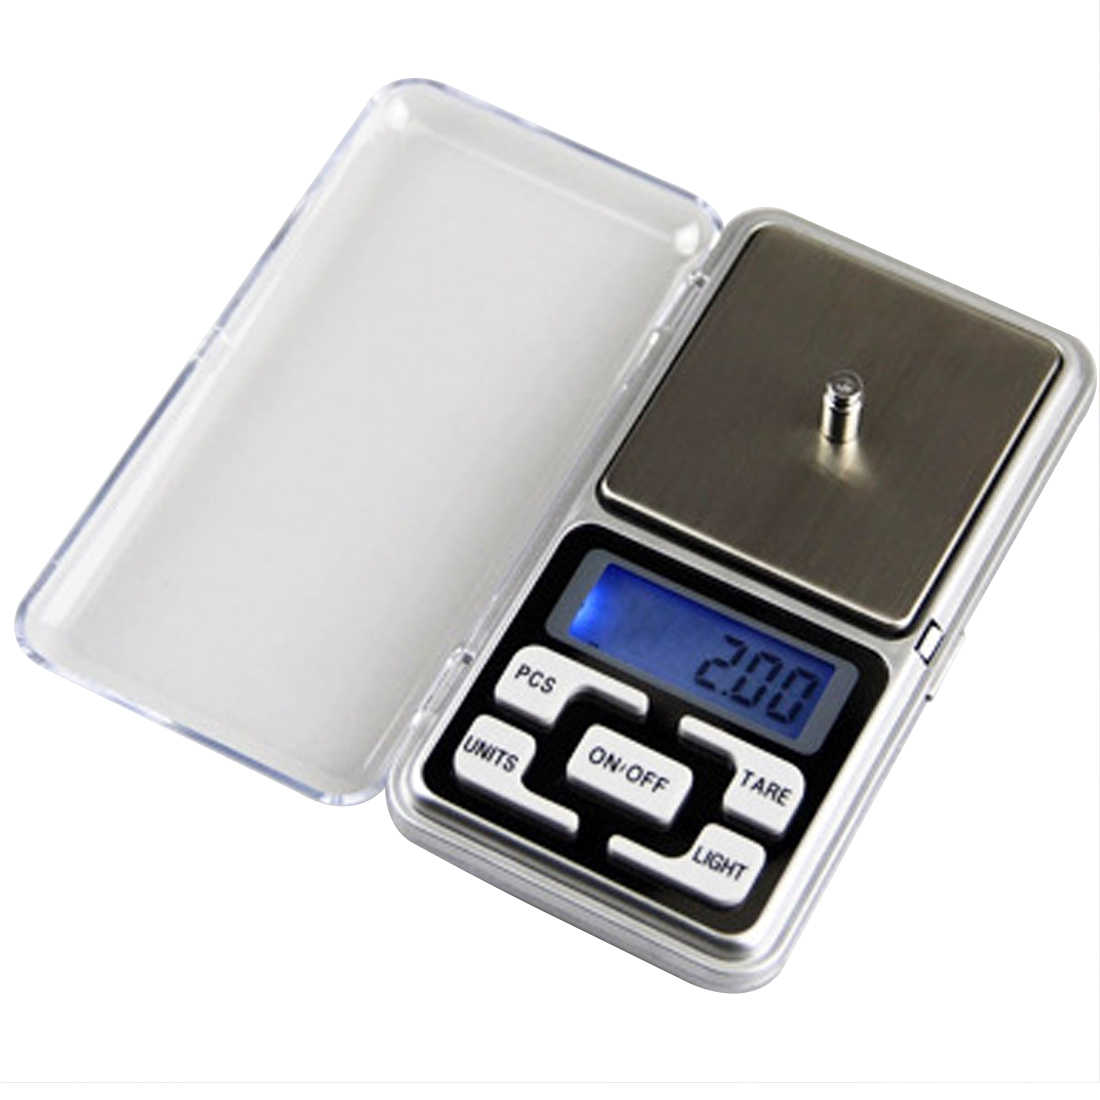 200g*0.01g Weighing Scale Weight Scales Balance g/oz/ct/tl Electronic LCD Display scale Mini Pocket Digital Scale the balance